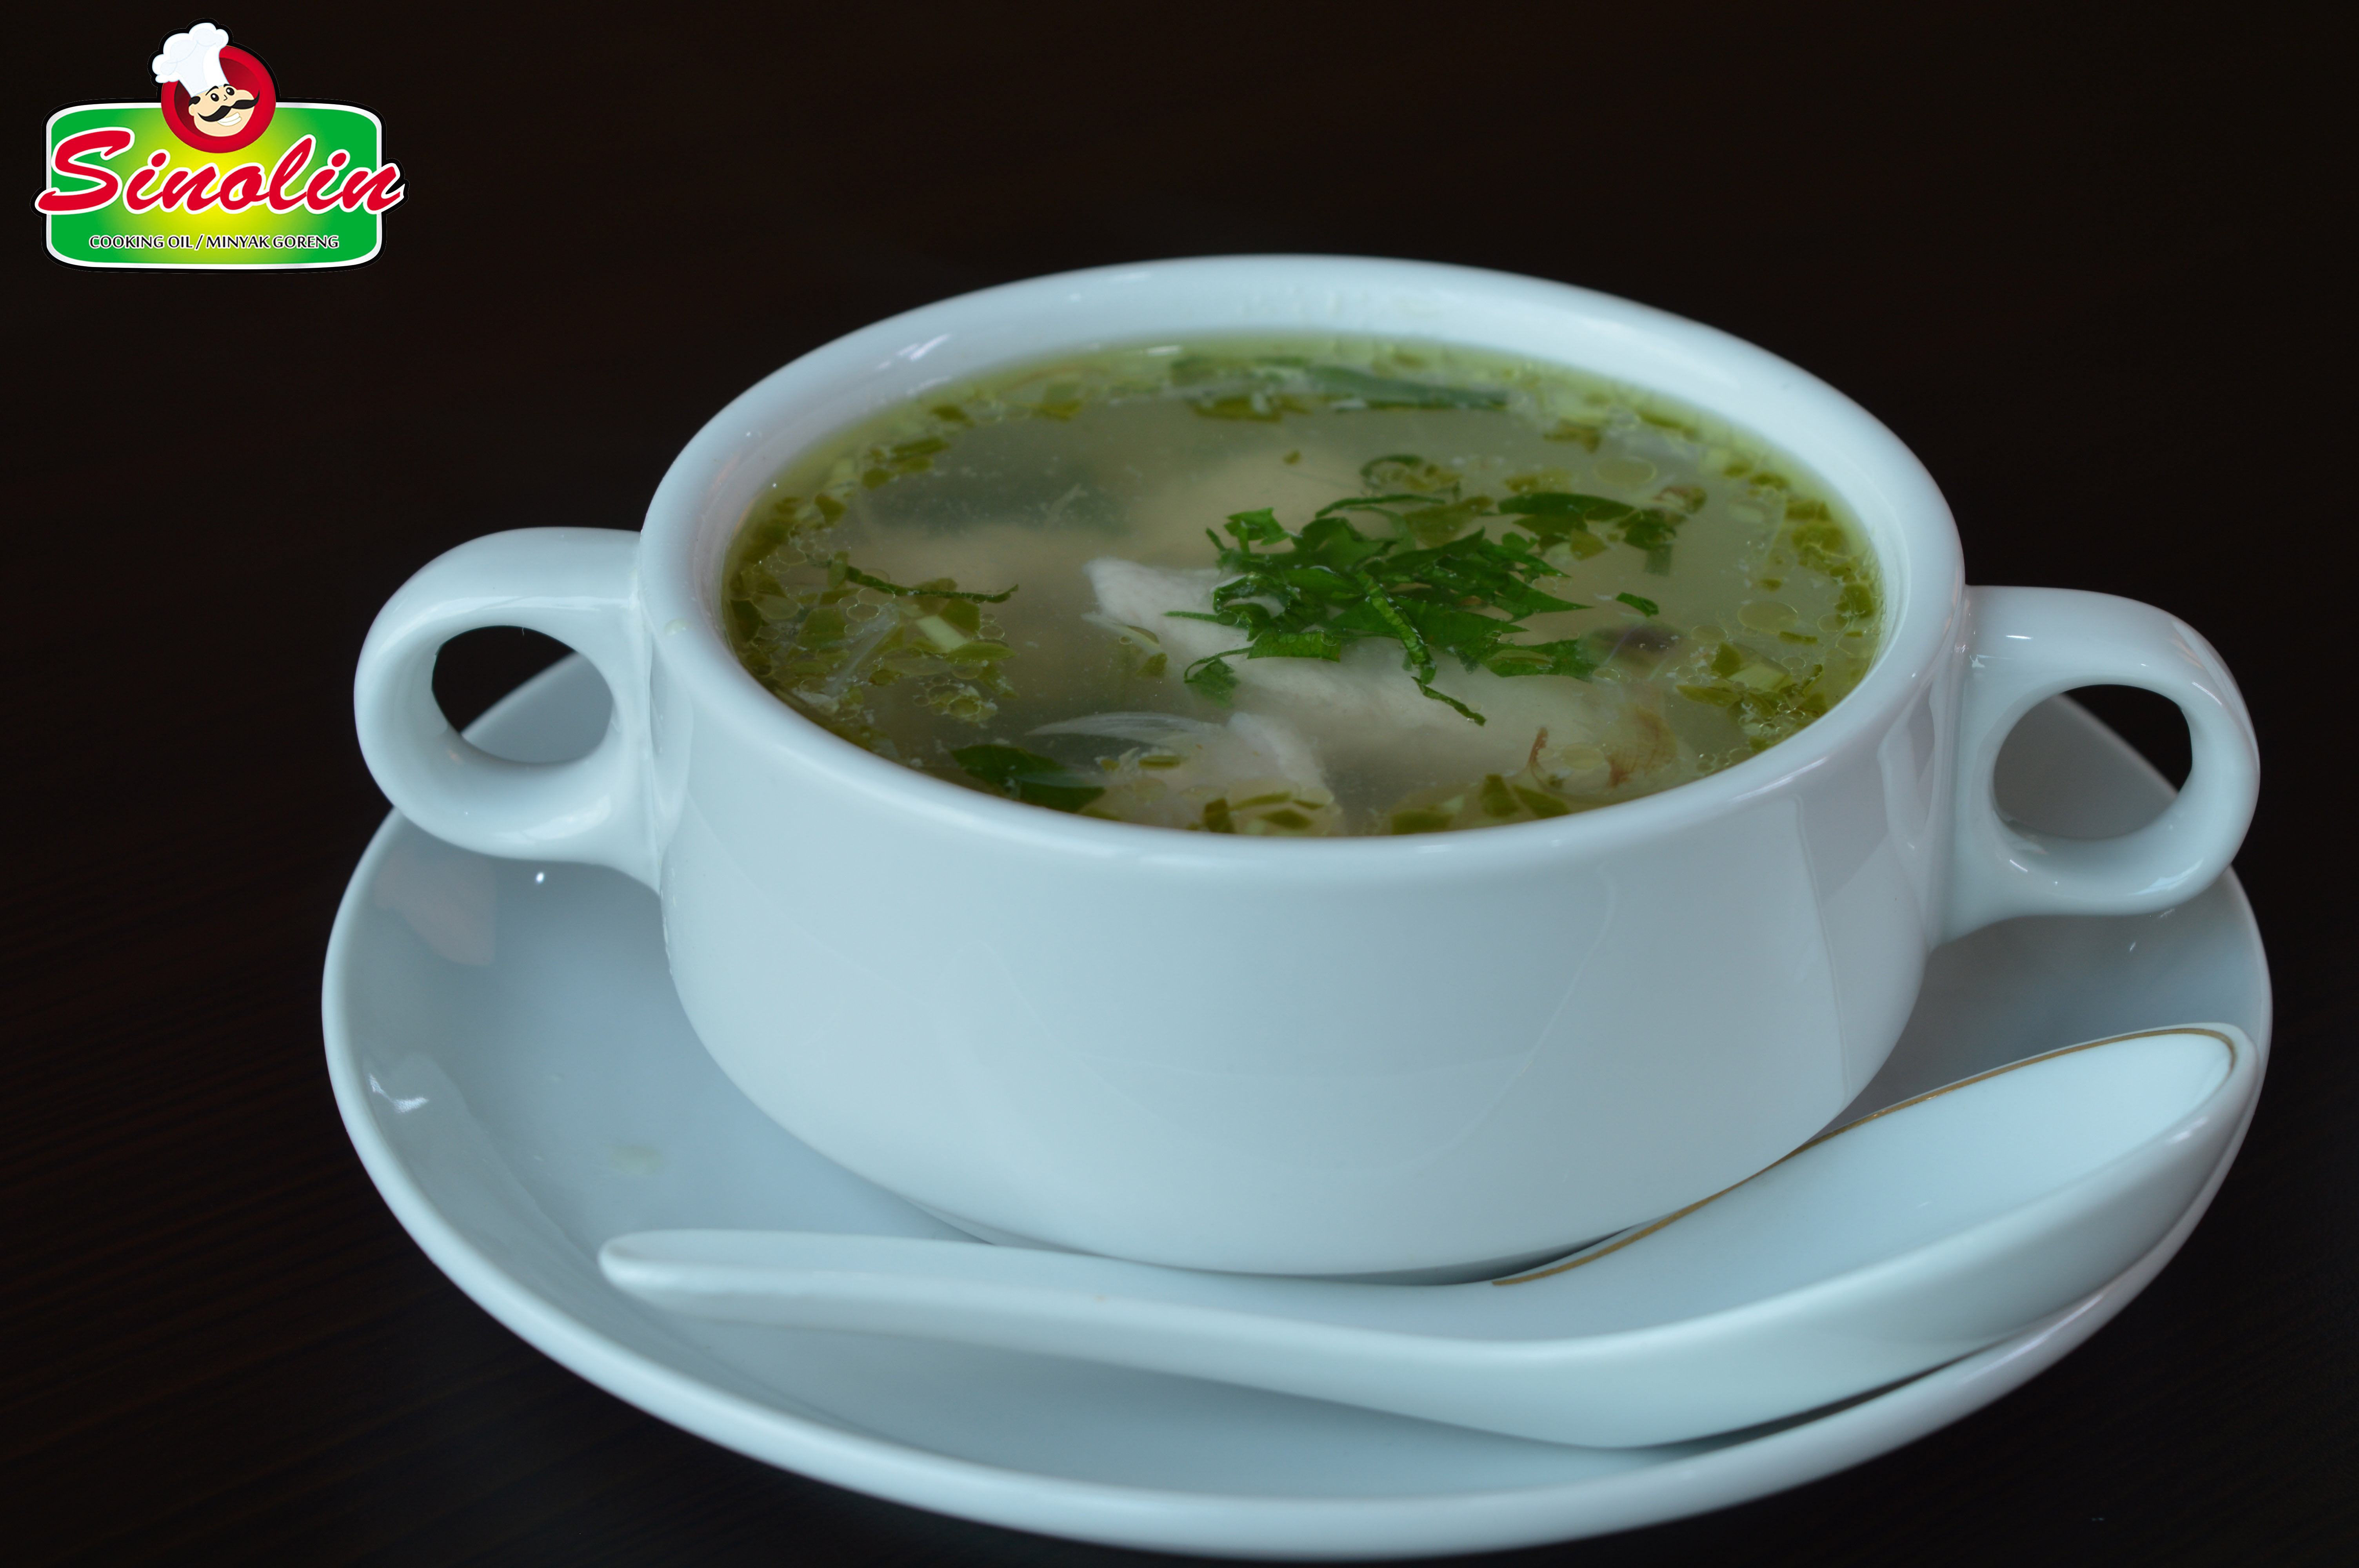 Spicy Chicken soup with green chilli by Dapur Sinolin